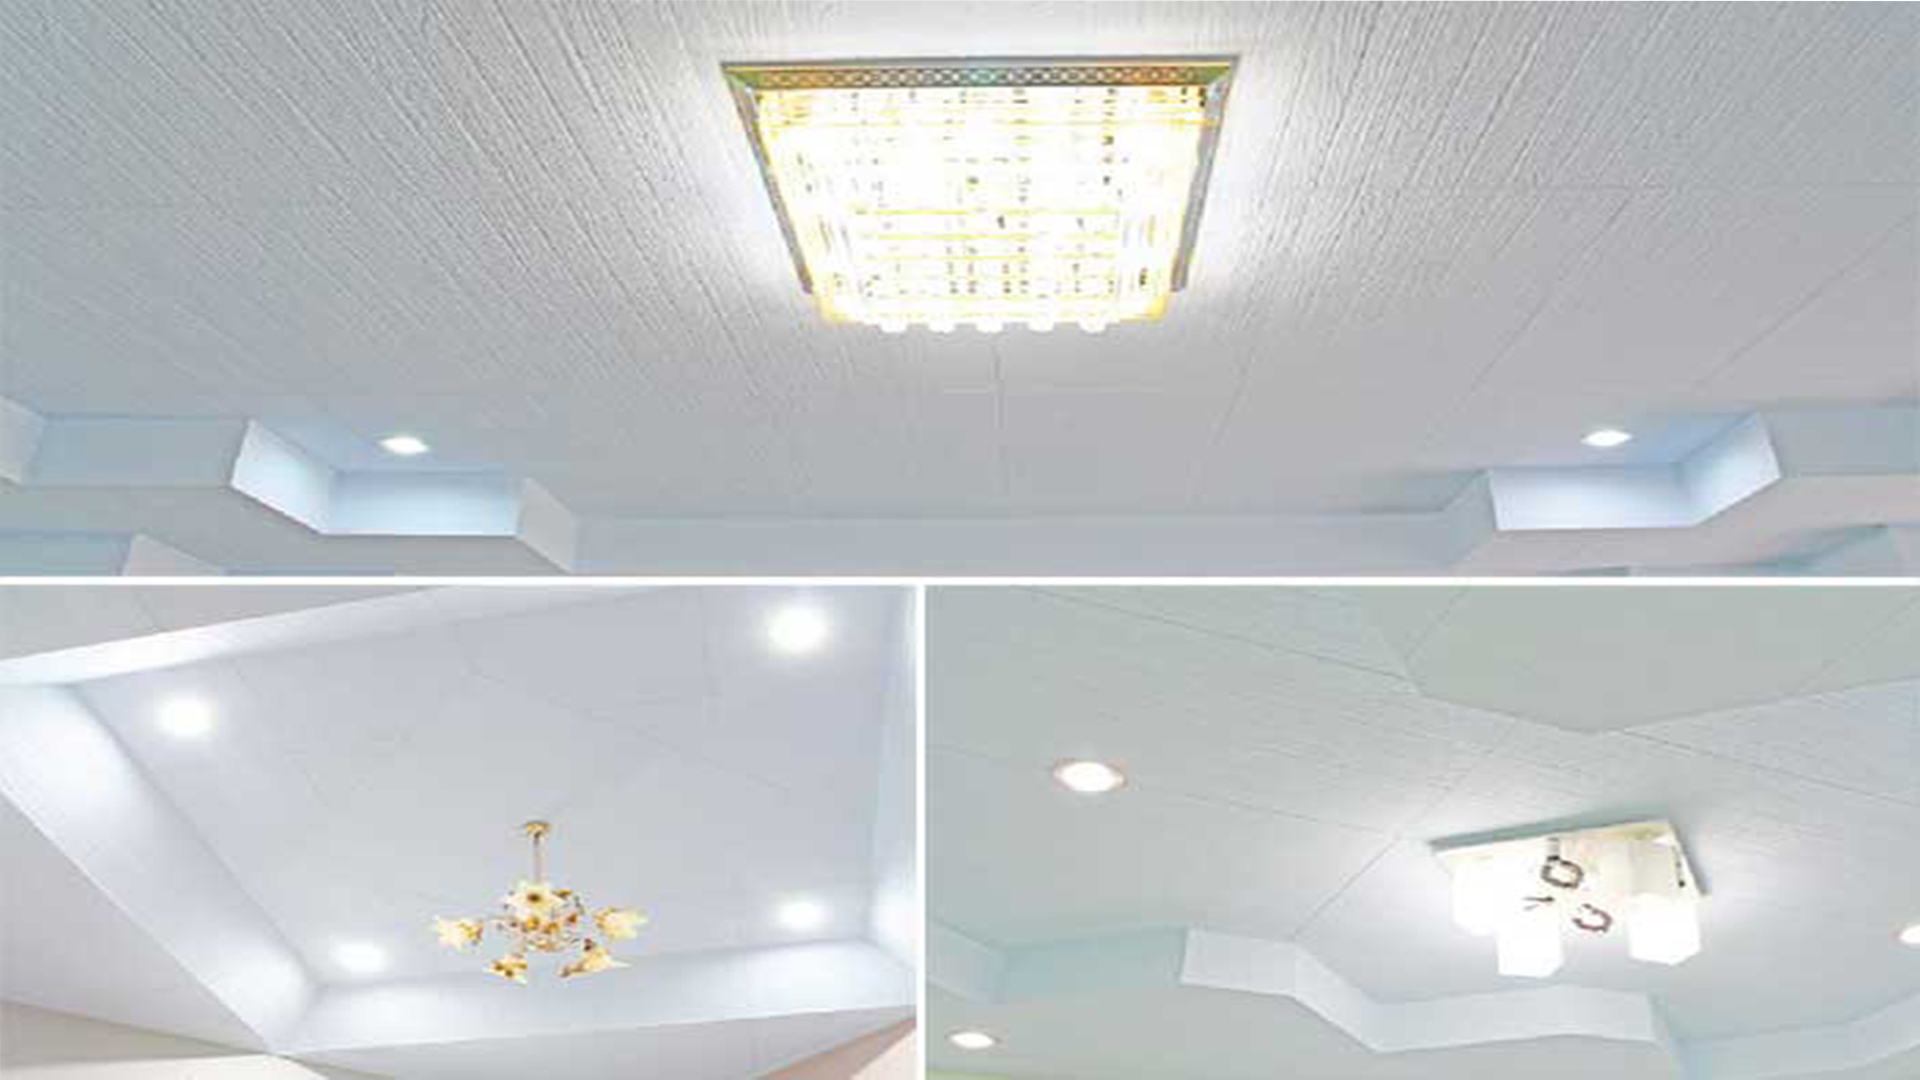 Changing for a Better Ceiling with SCG Smartboard